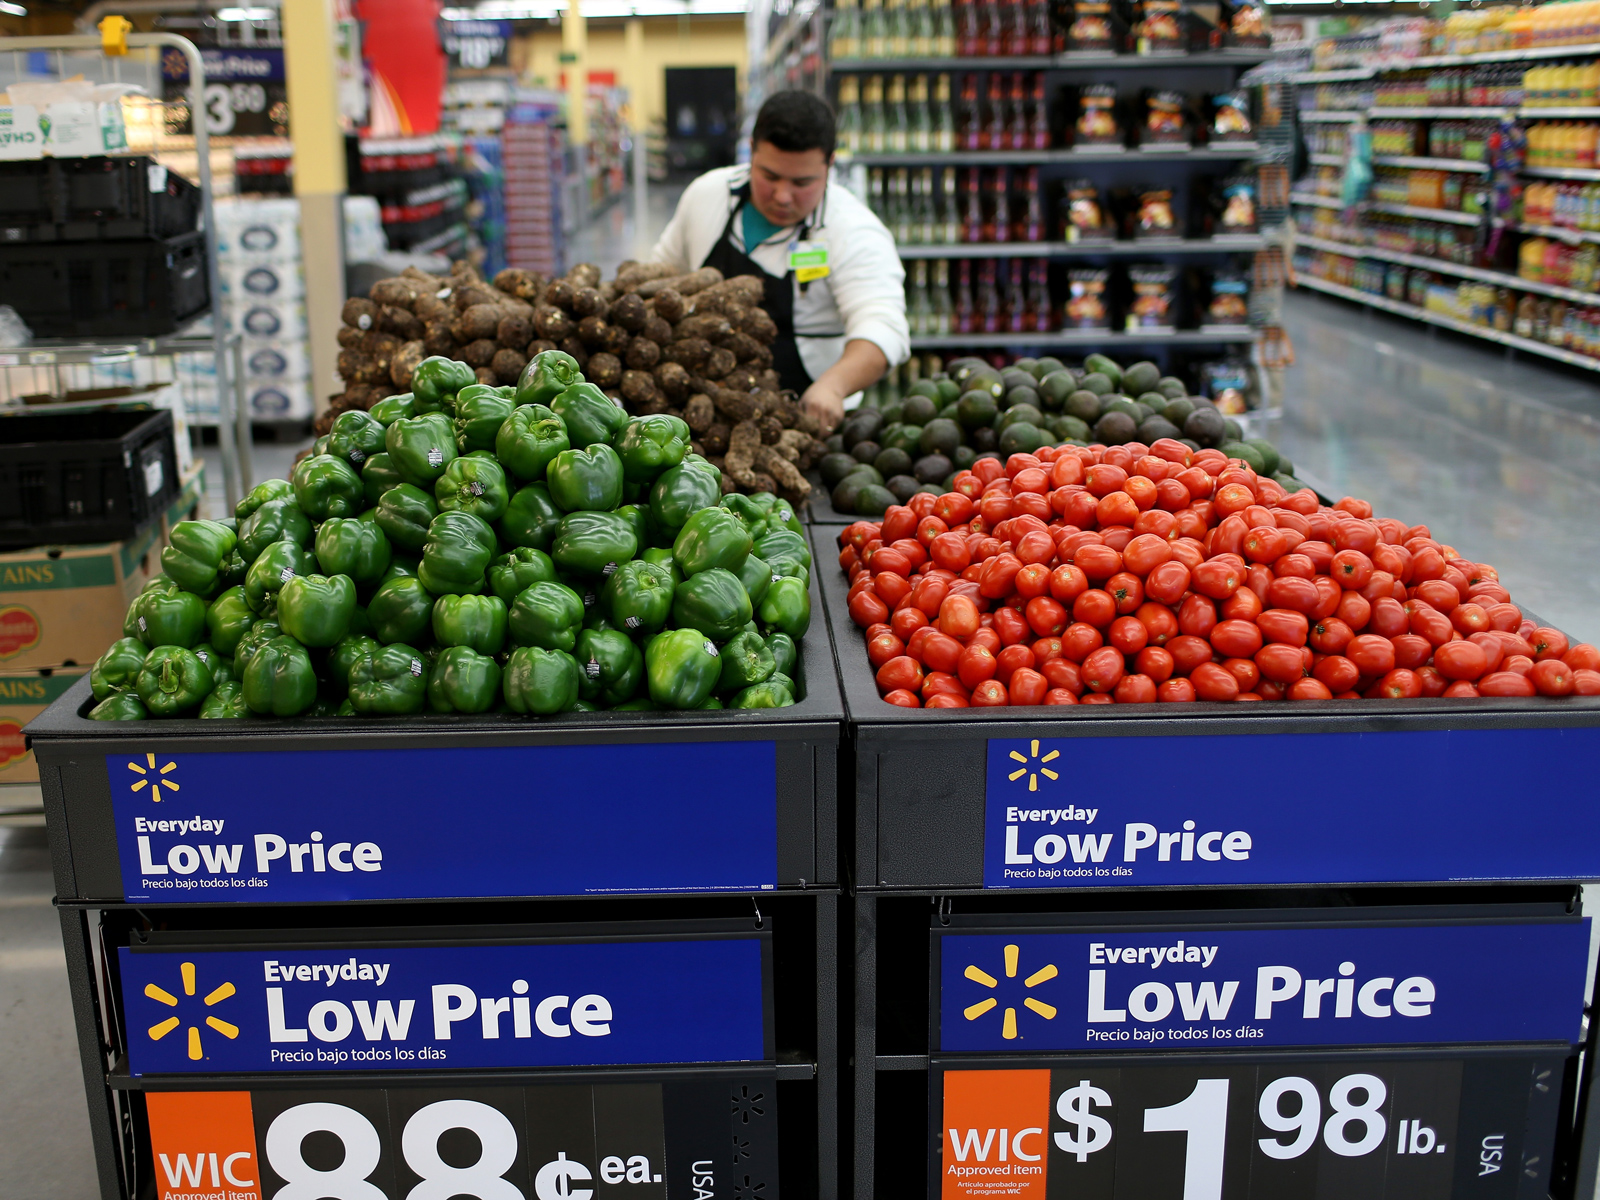 Walmart Offers Subscription for Unlimited Grocery Delivery